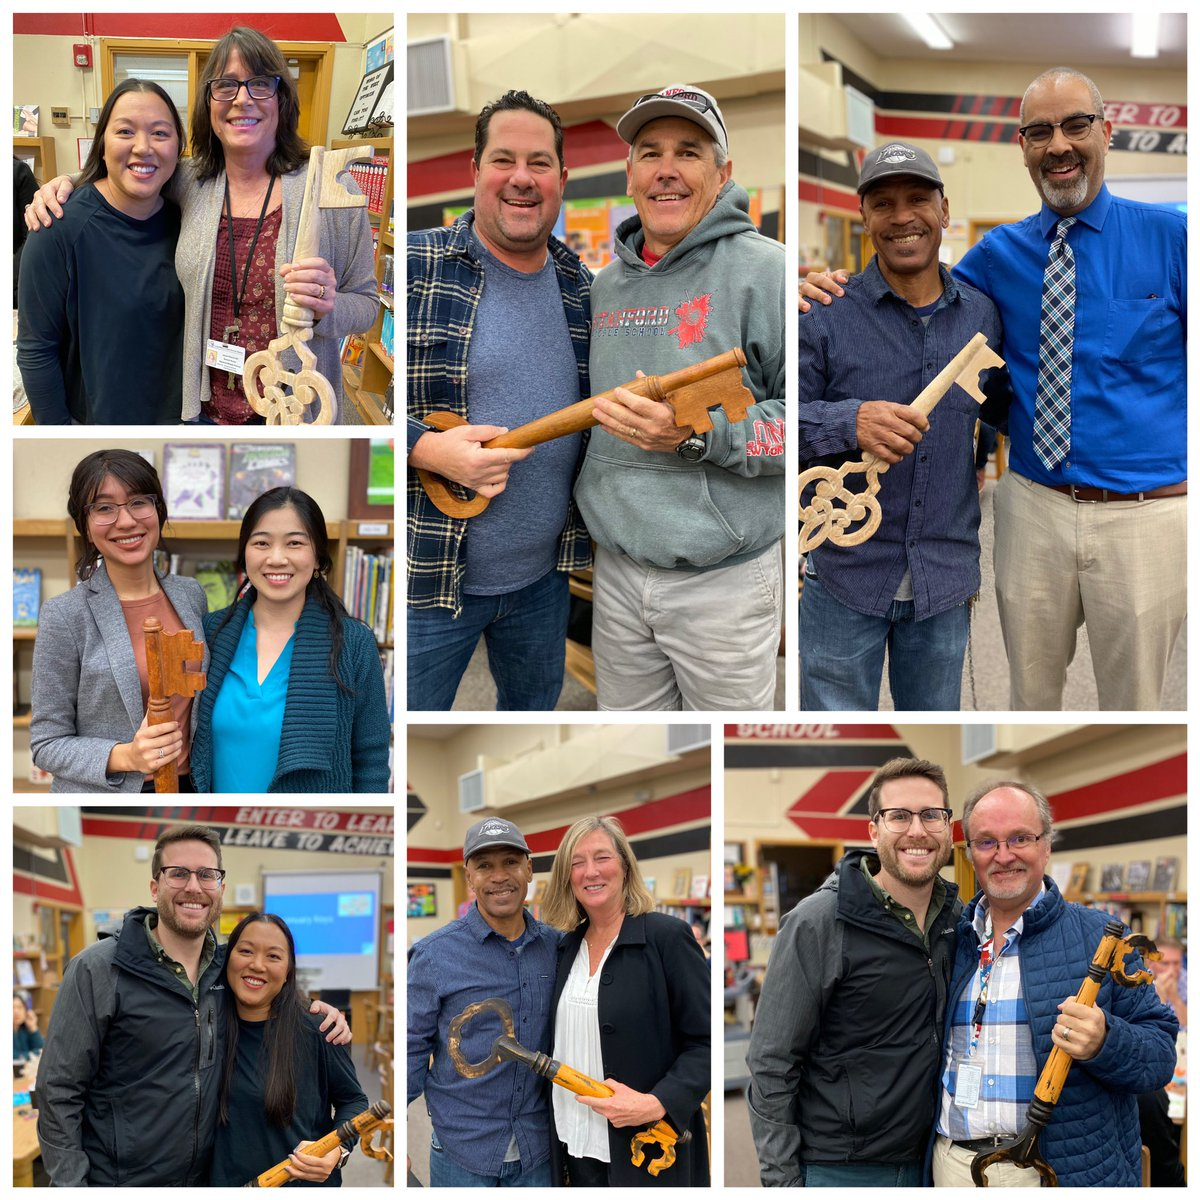 Stanford Key Keepers passed their keys to honor their colleagues this week!  #unlockinglearningthroughrelationships 🔑 #ProudtoBeLBUSD